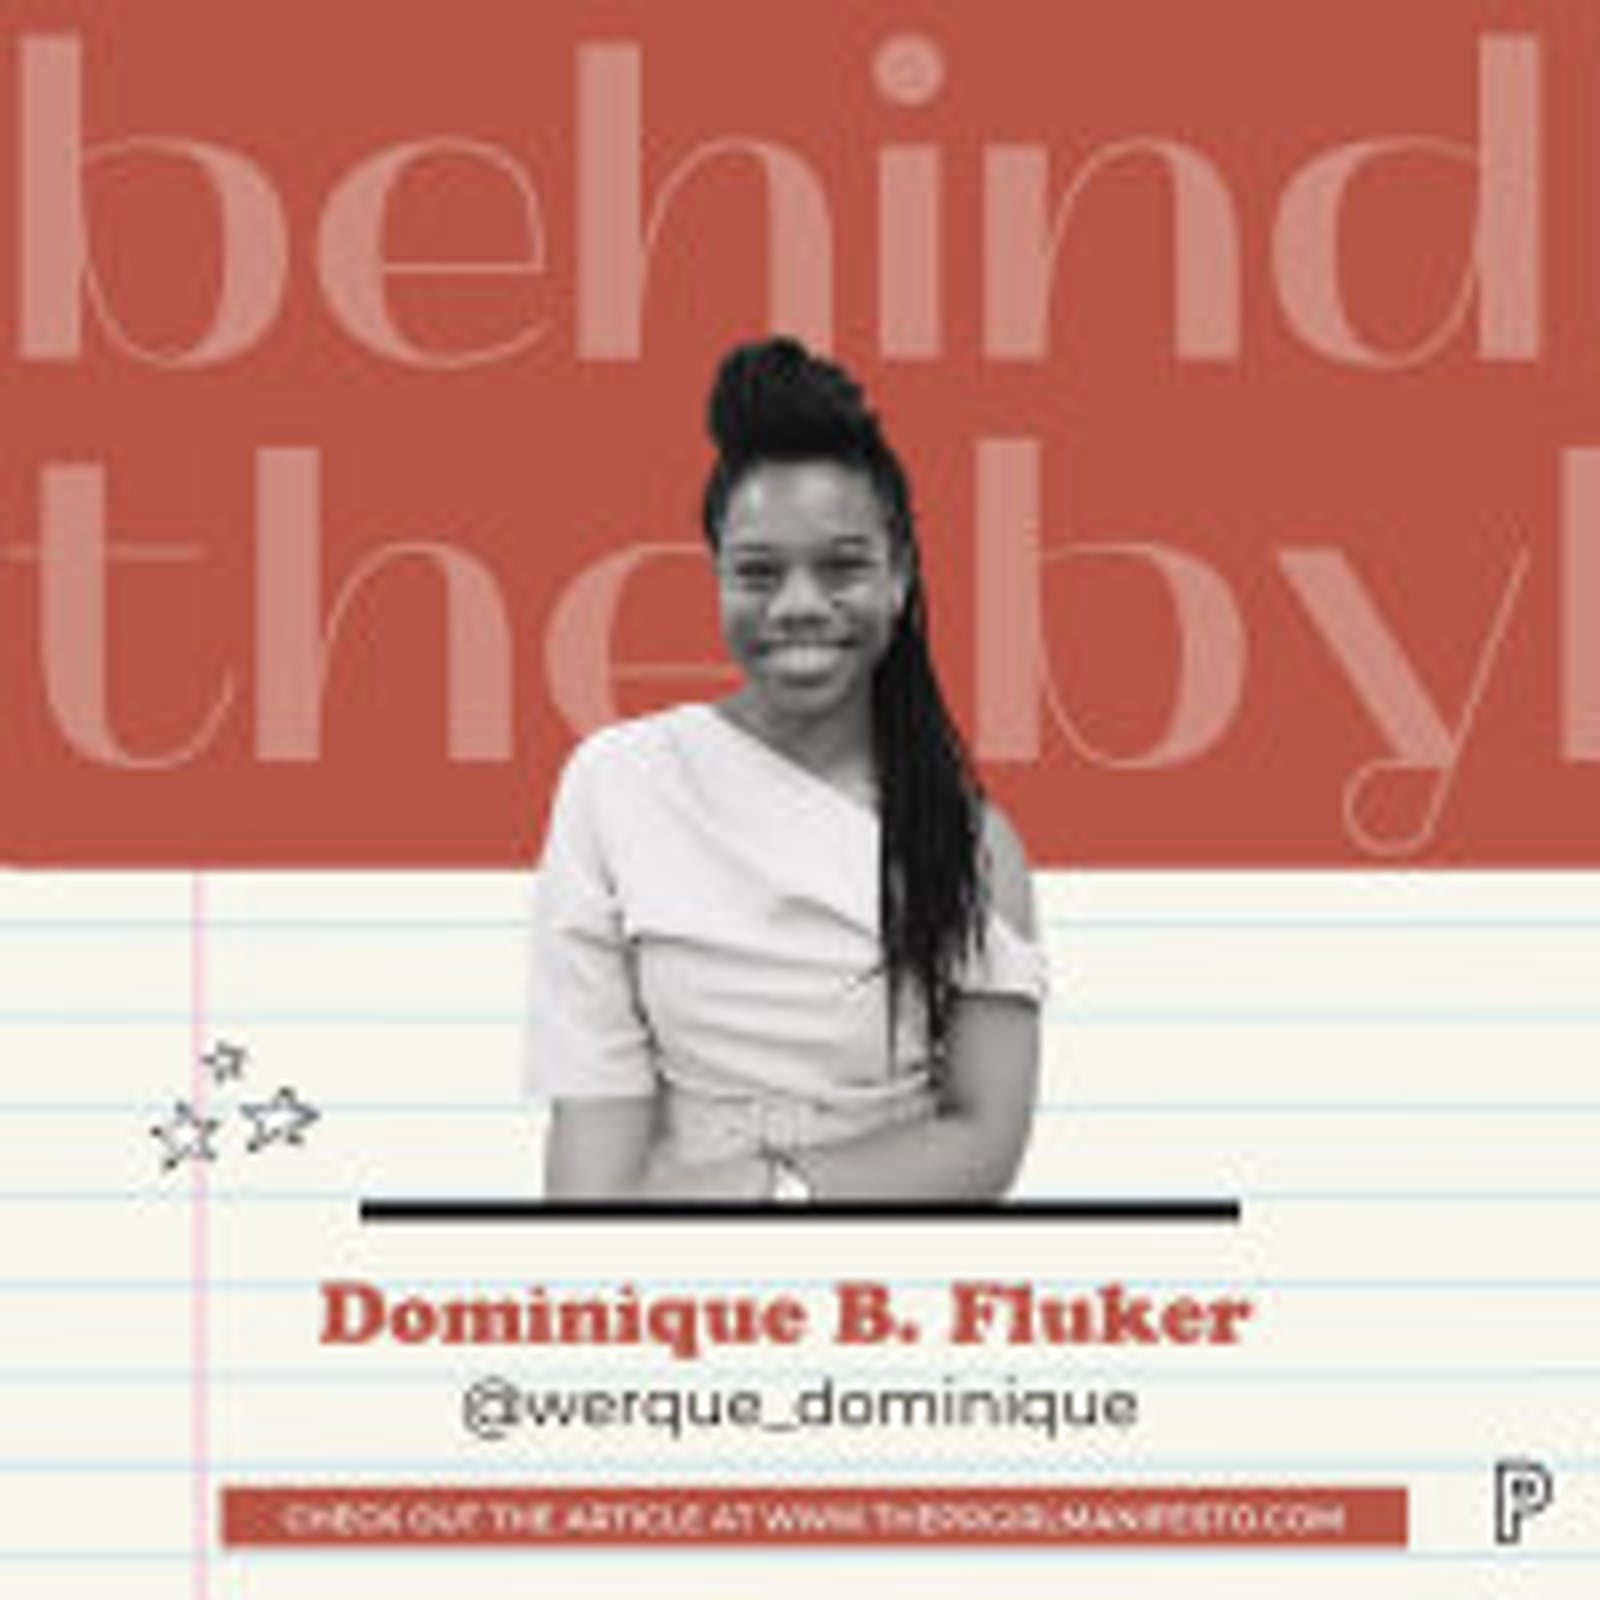 Check Out the Latest #BehindTheByline with Dominique B. Fluker